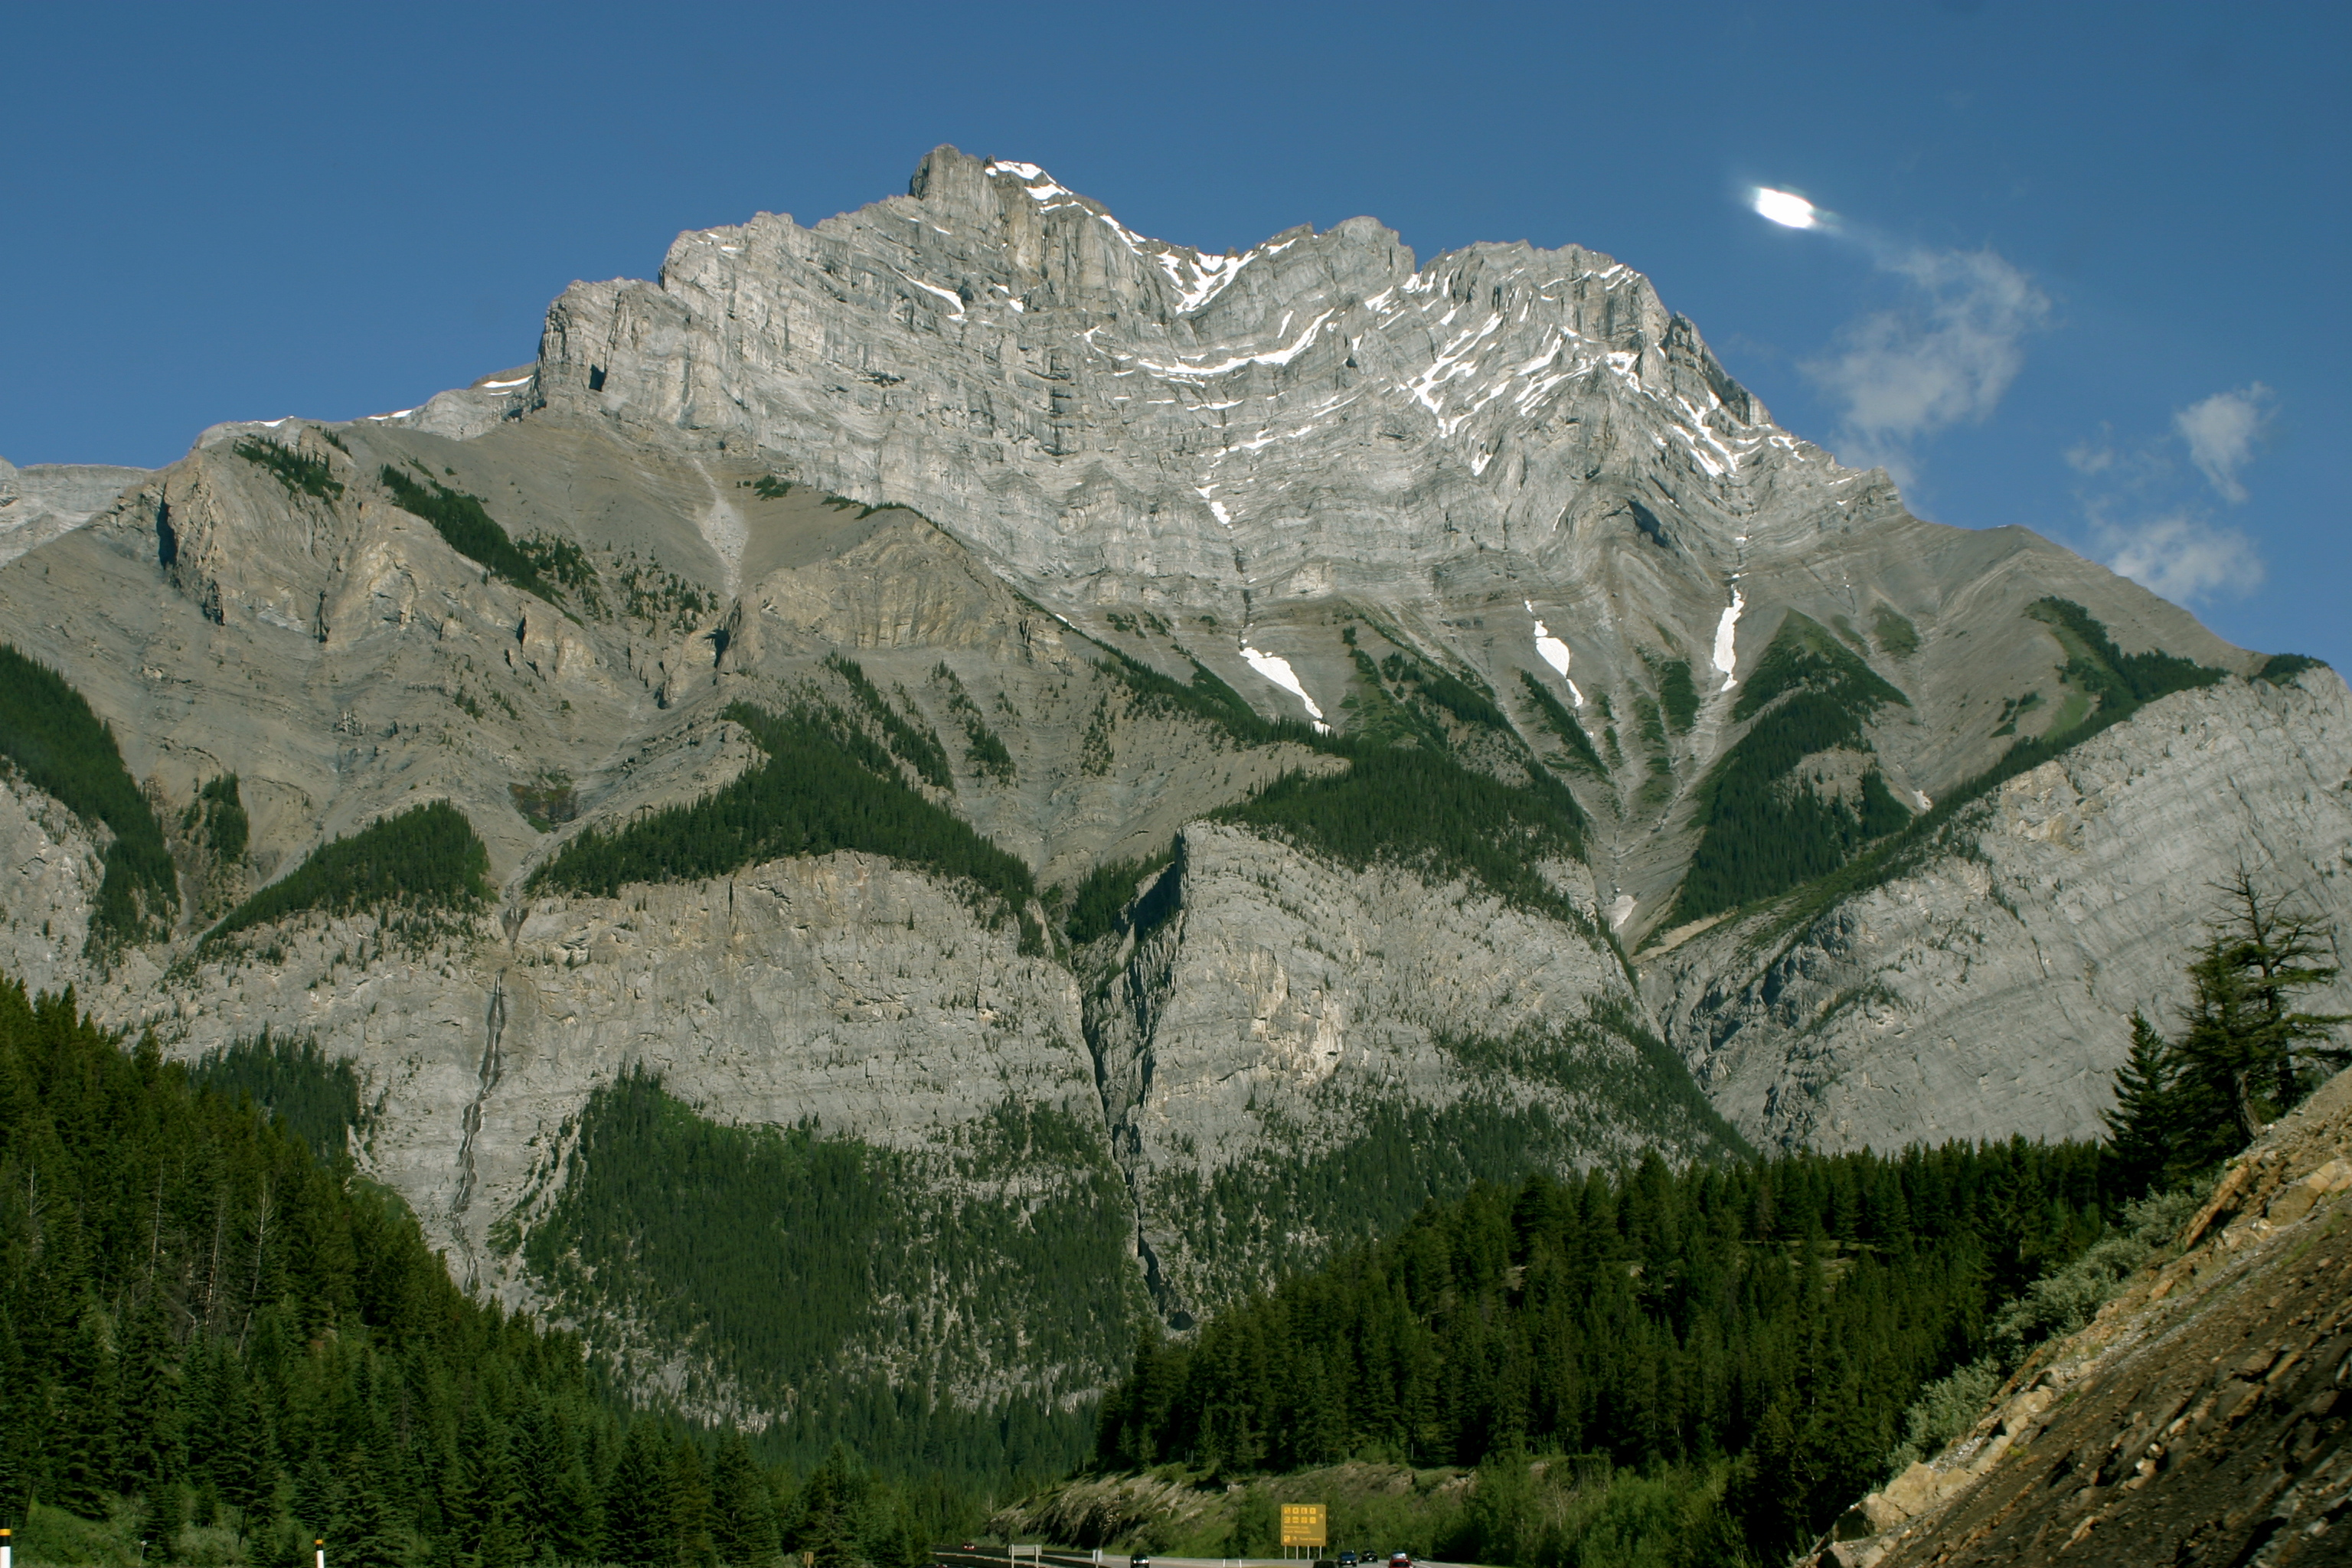 The Canadian Rockies Going Into Banff National Park